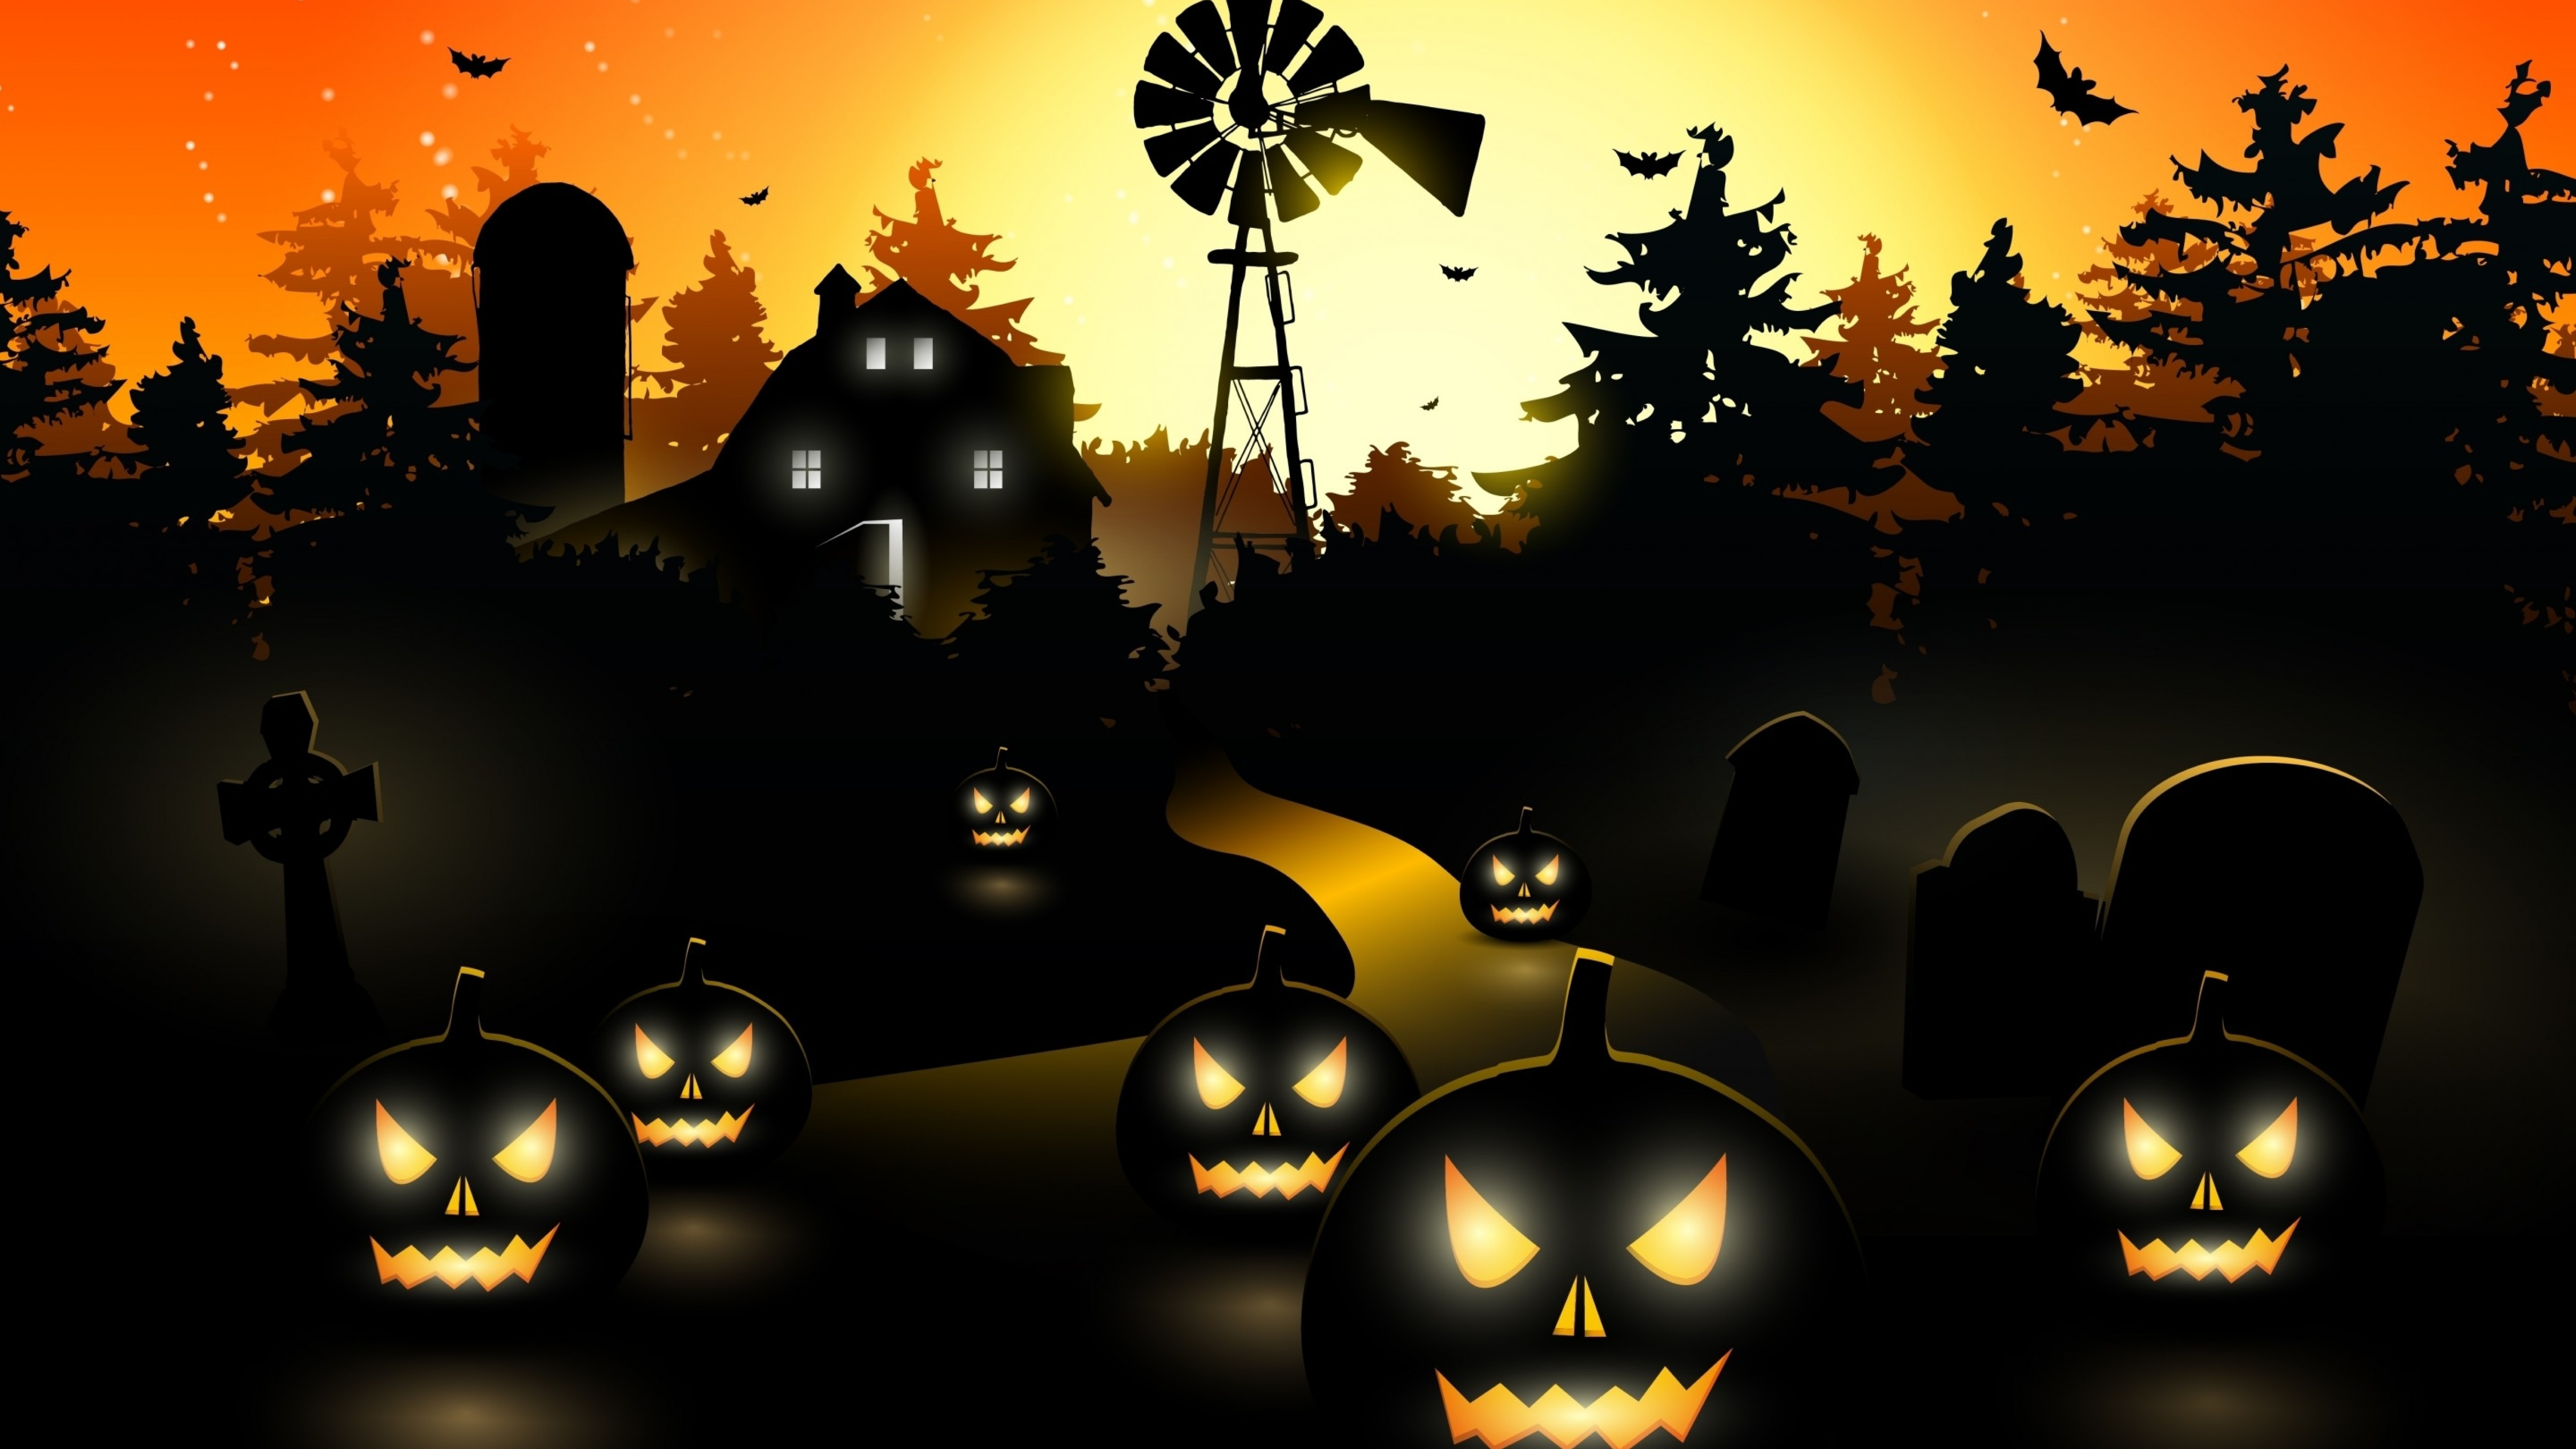 Most Inspiring Wallpaper Halloween Ultra Hd - halloween-haunted-house_59586_5120x2880  You Should Have_761183.jpg